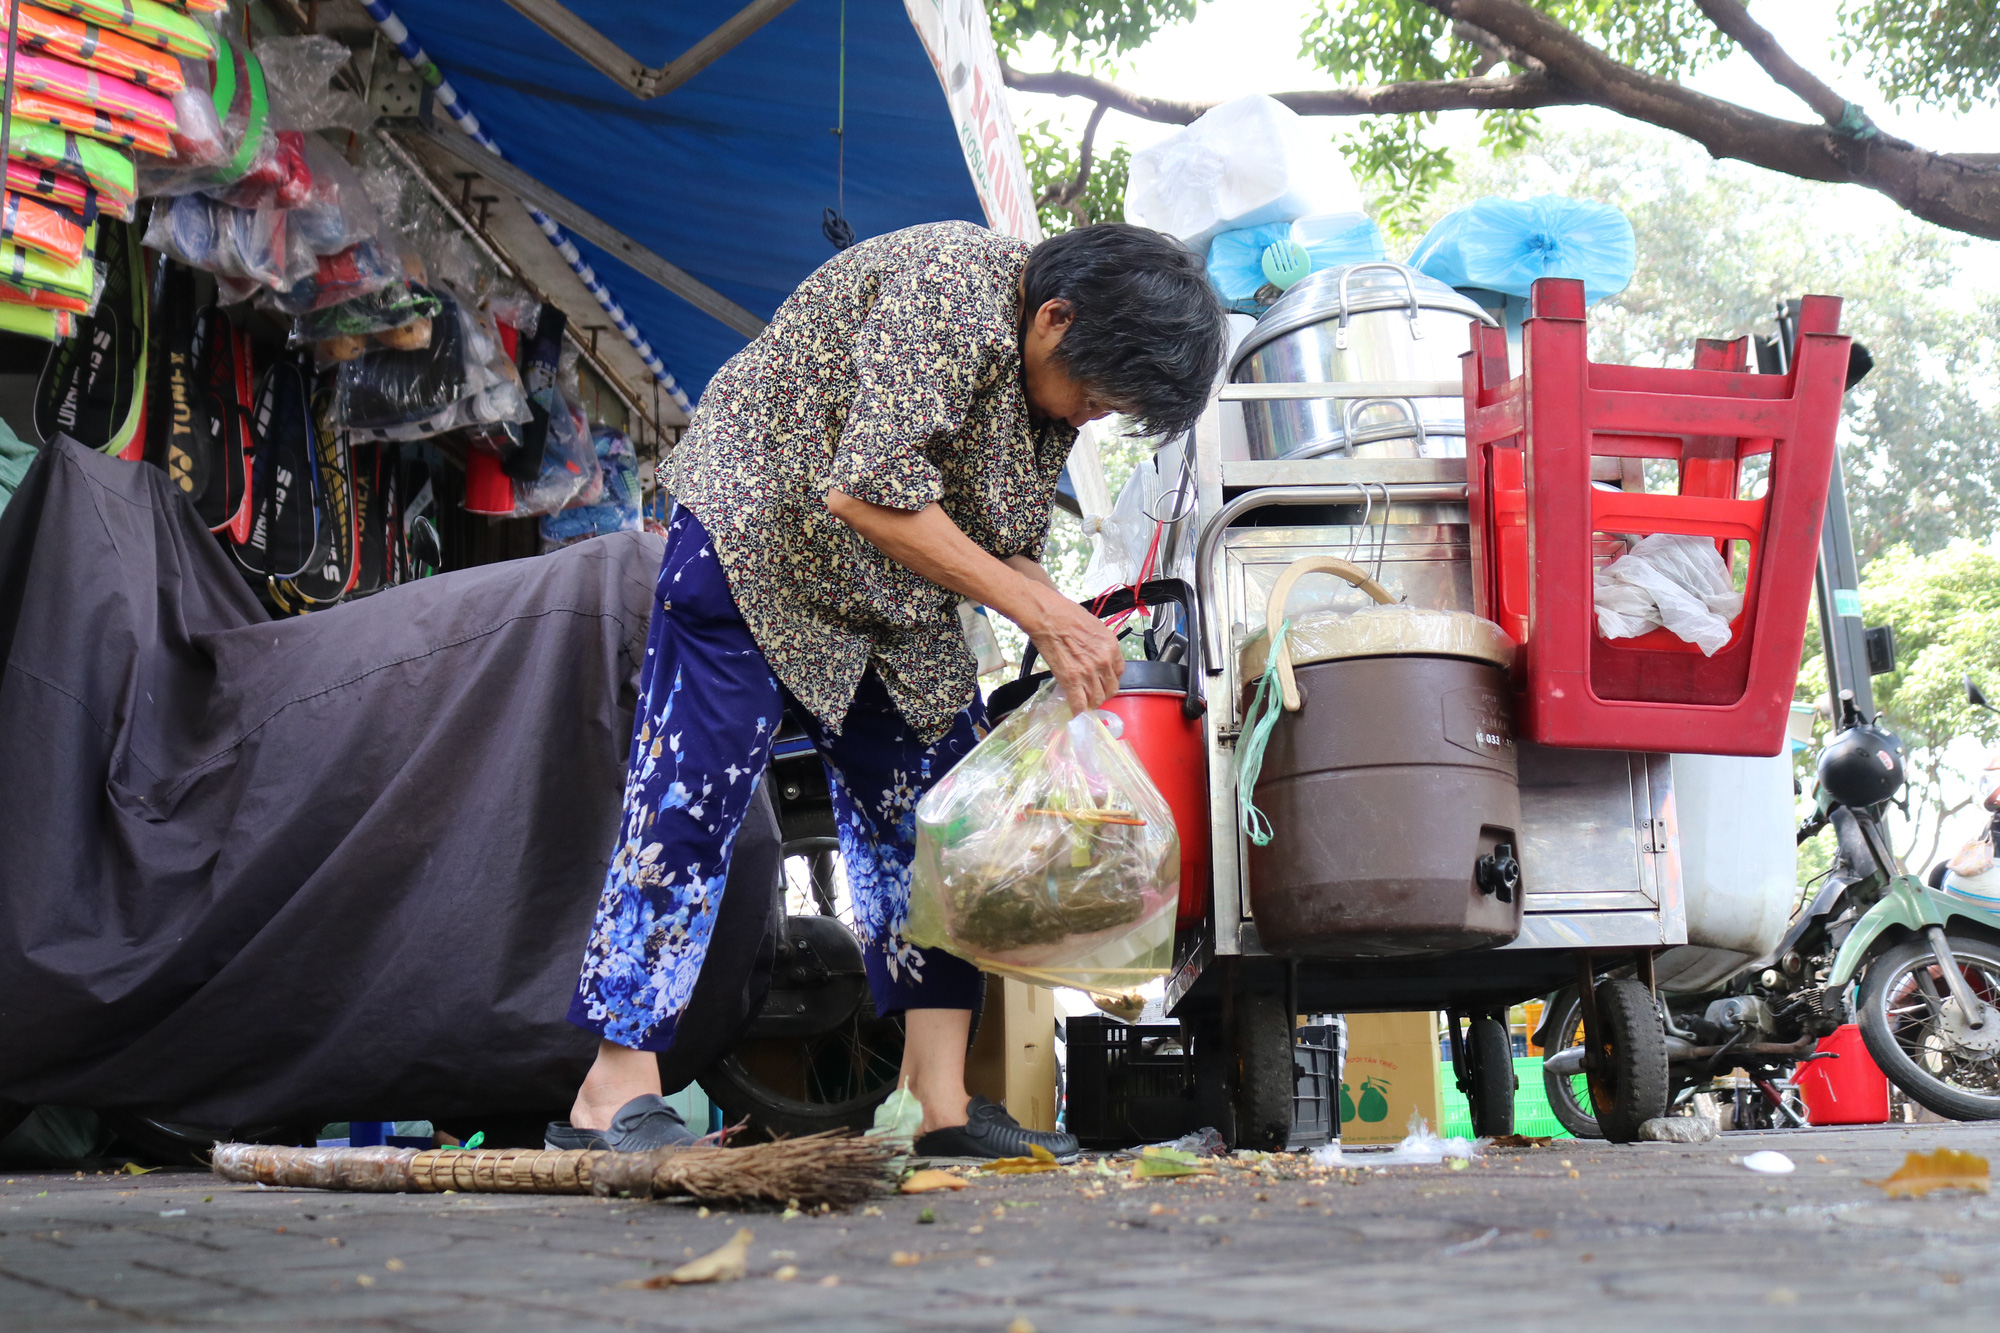 Nguyen Thi Huynh parks her sticky rice vendor cart at the corner of Nguyen Trai and Tan Da Streets in District 5, Ho Chi Minh City. Photo: Ngoc Phuong / Tuoi Tre